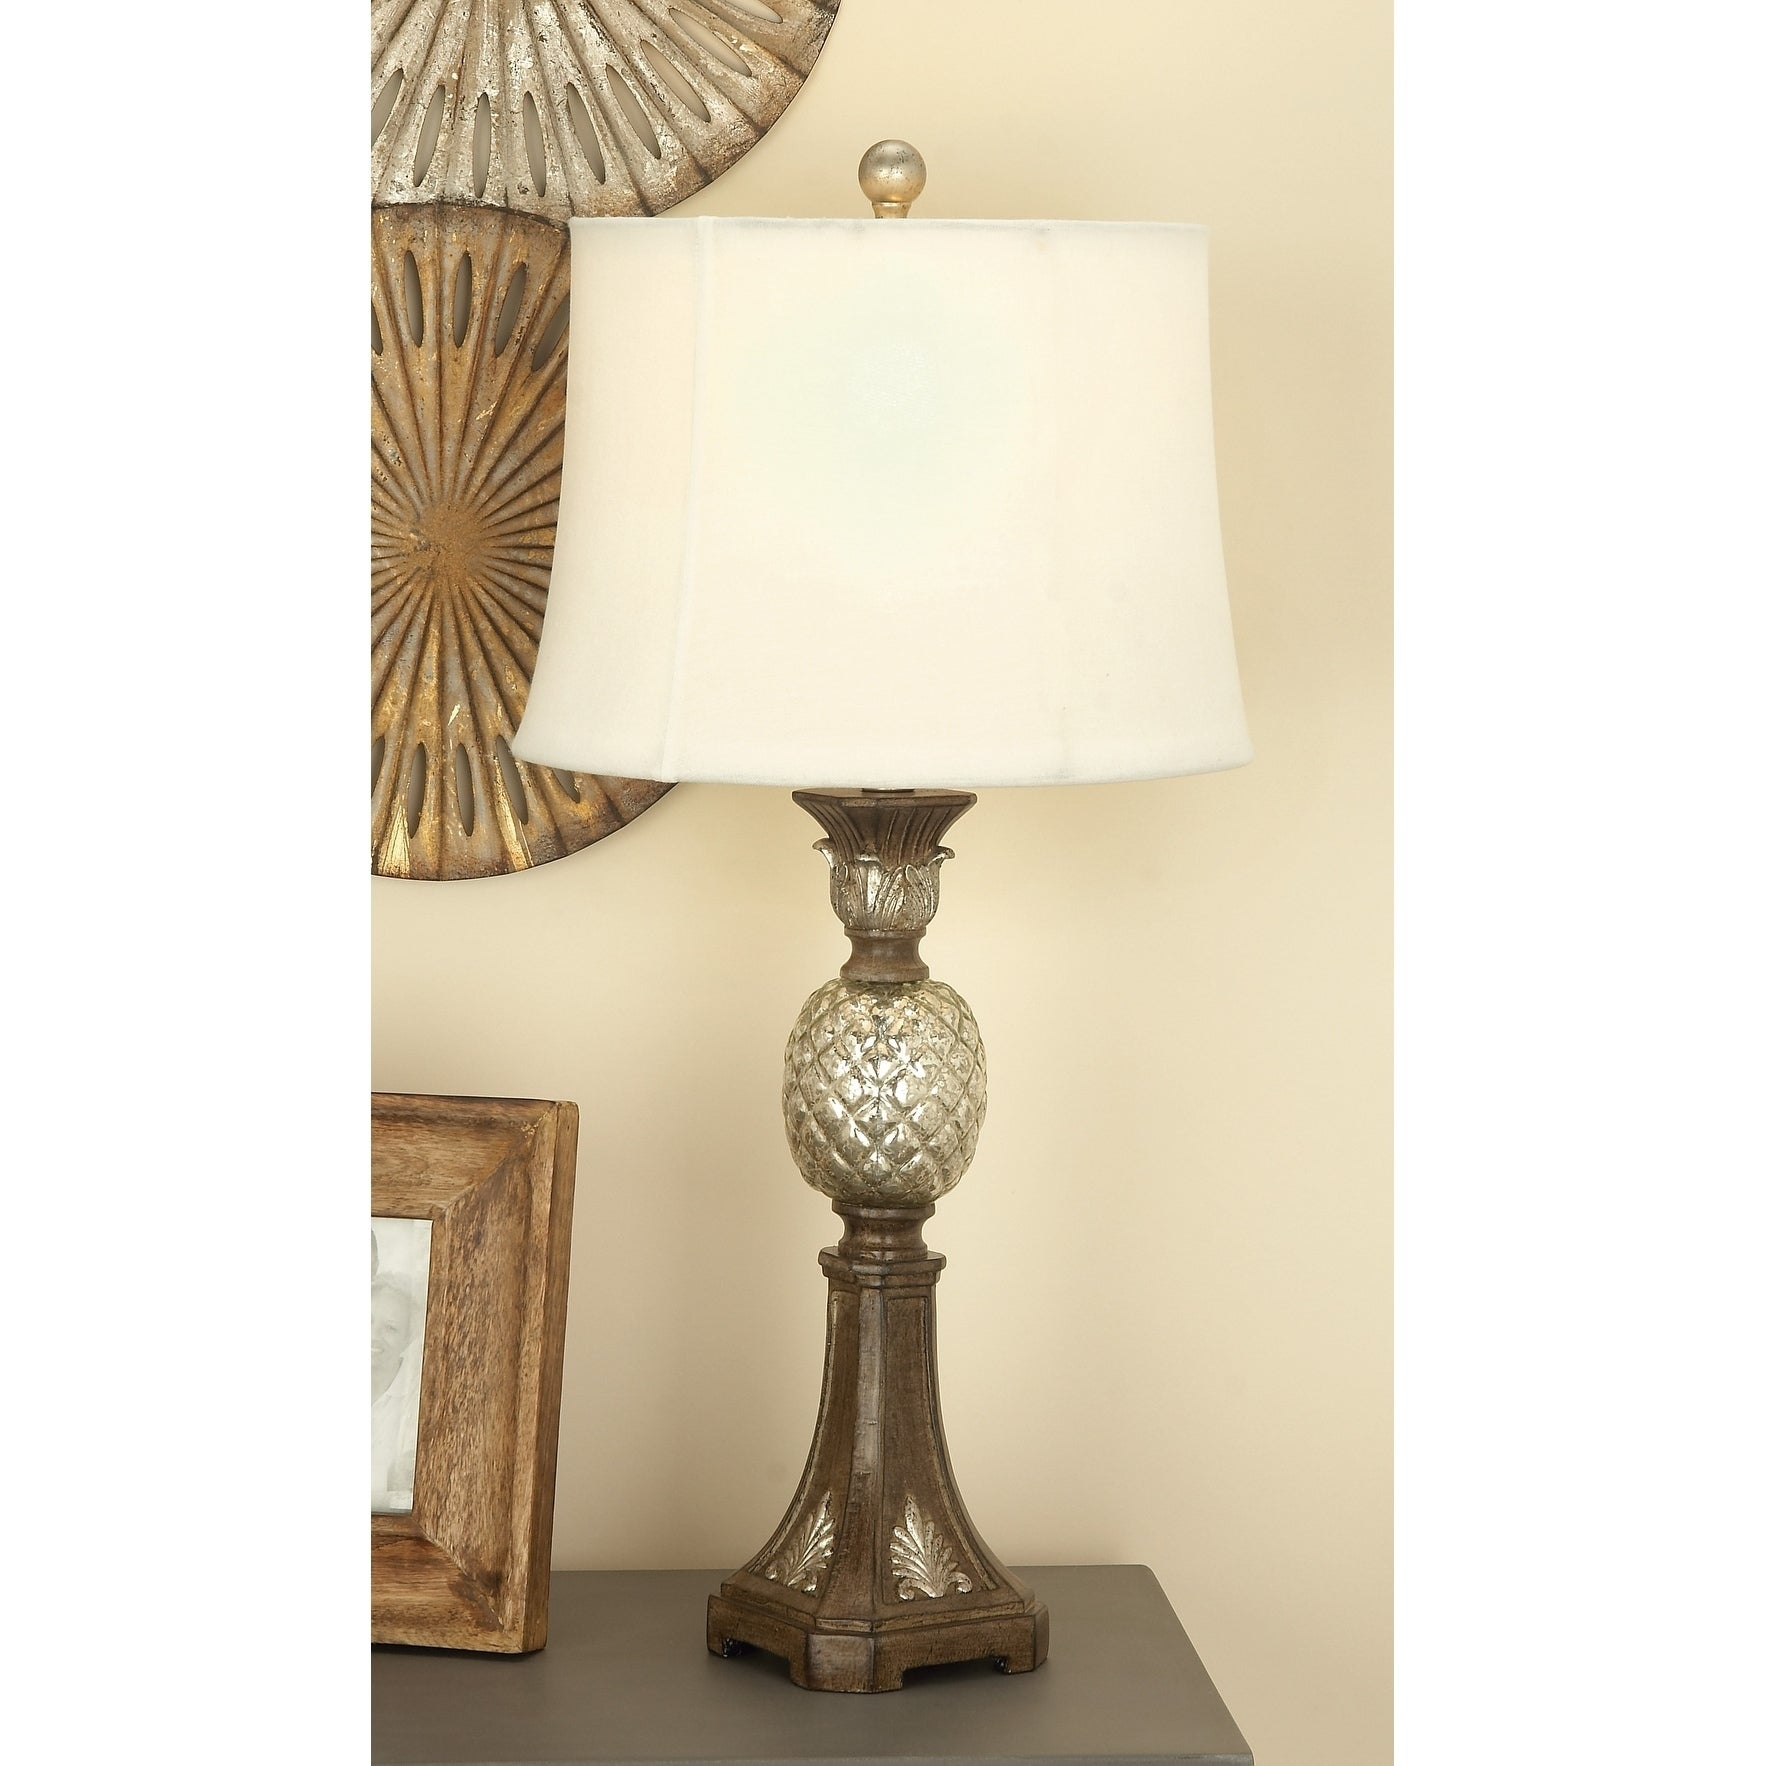 Studio 350 Set of 2, PS Glass Pineapple Lamp 29 inches hi...